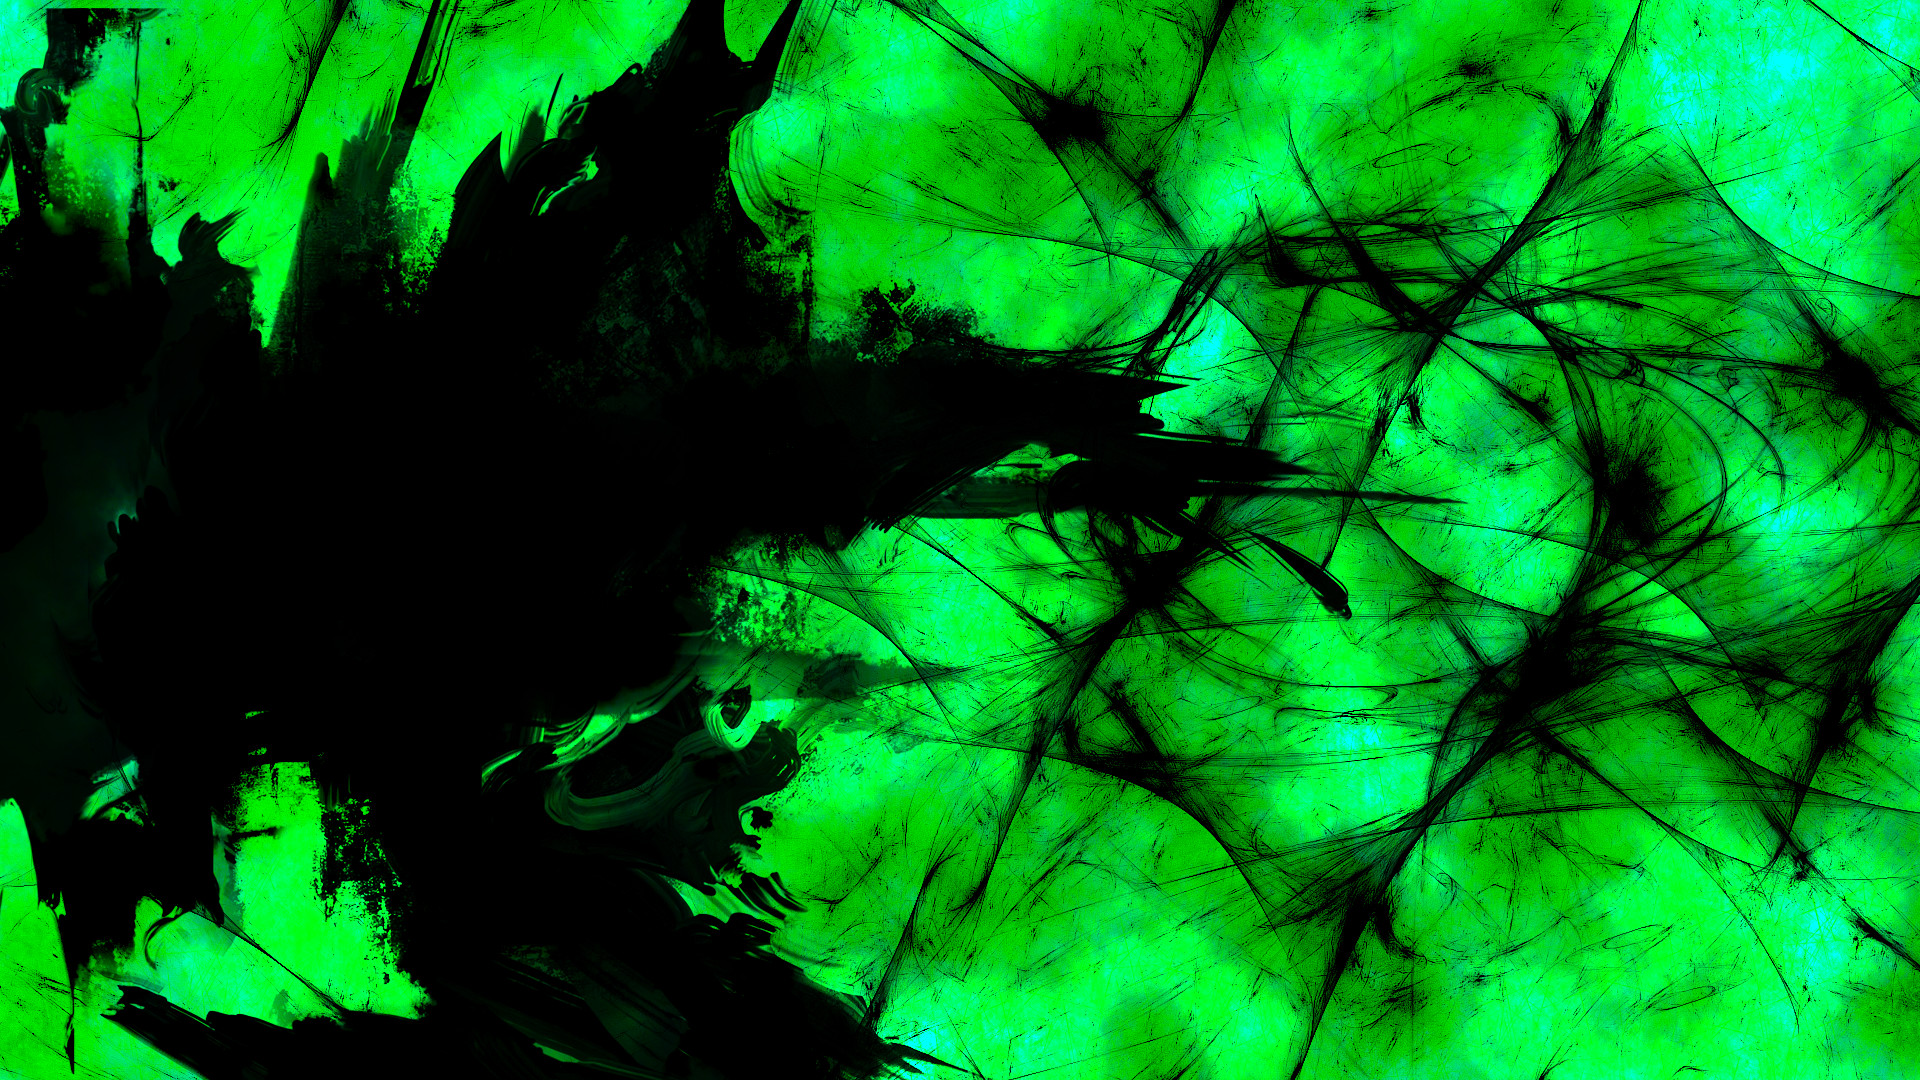 1920x1080 Green Abstract Wallpaper Full HD Neon Design Plain And Black And ... src